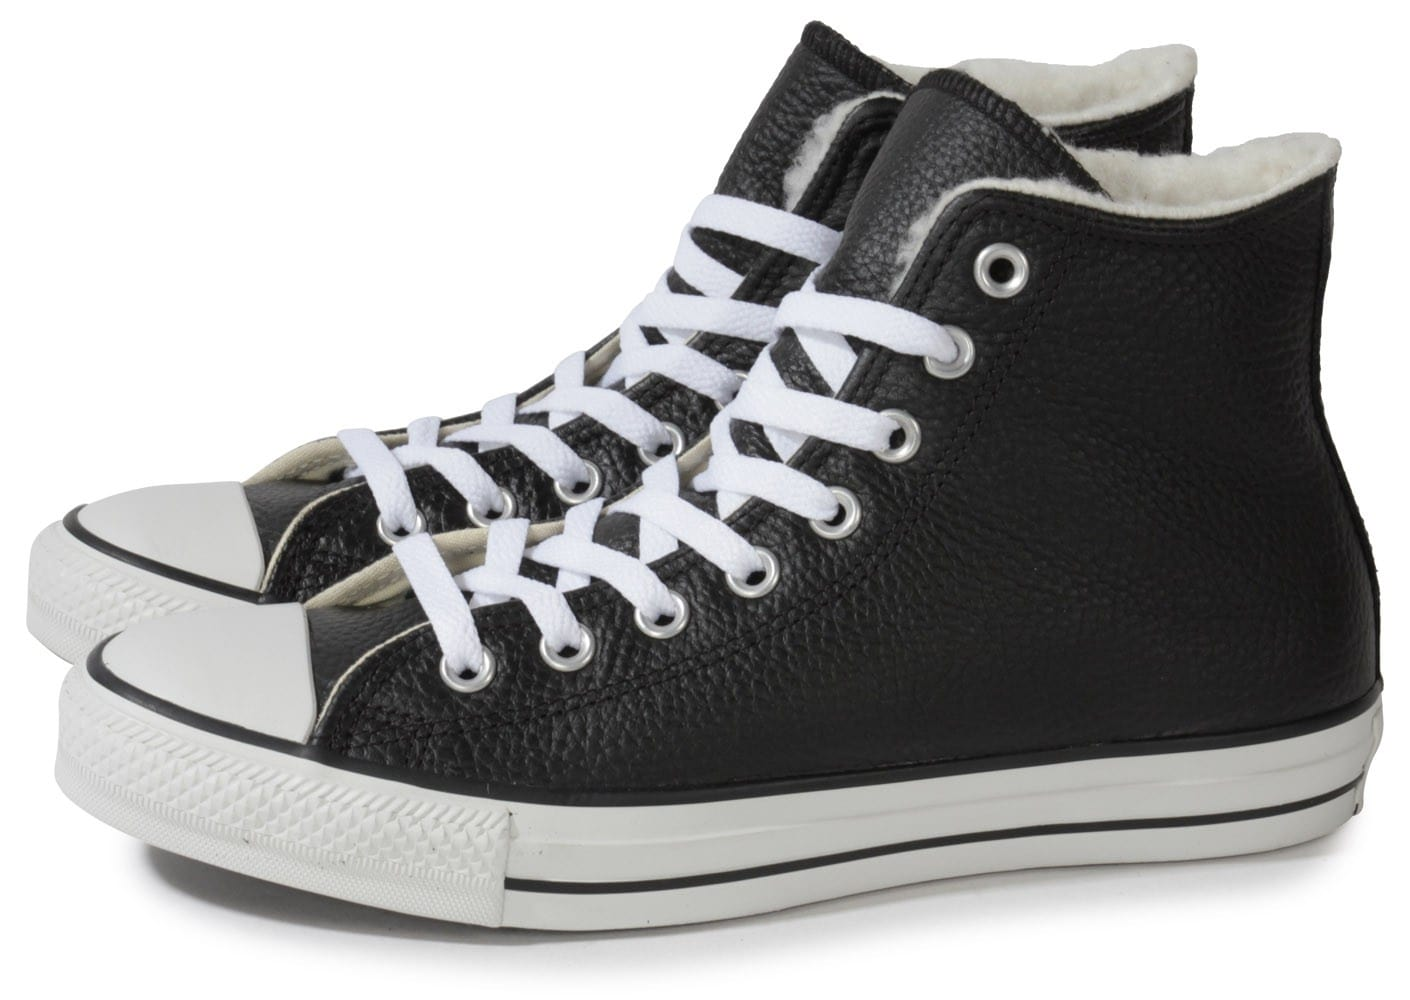 converse chuck taylor all star montante cuir noire chaussures baskets homme chausport. Black Bedroom Furniture Sets. Home Design Ideas